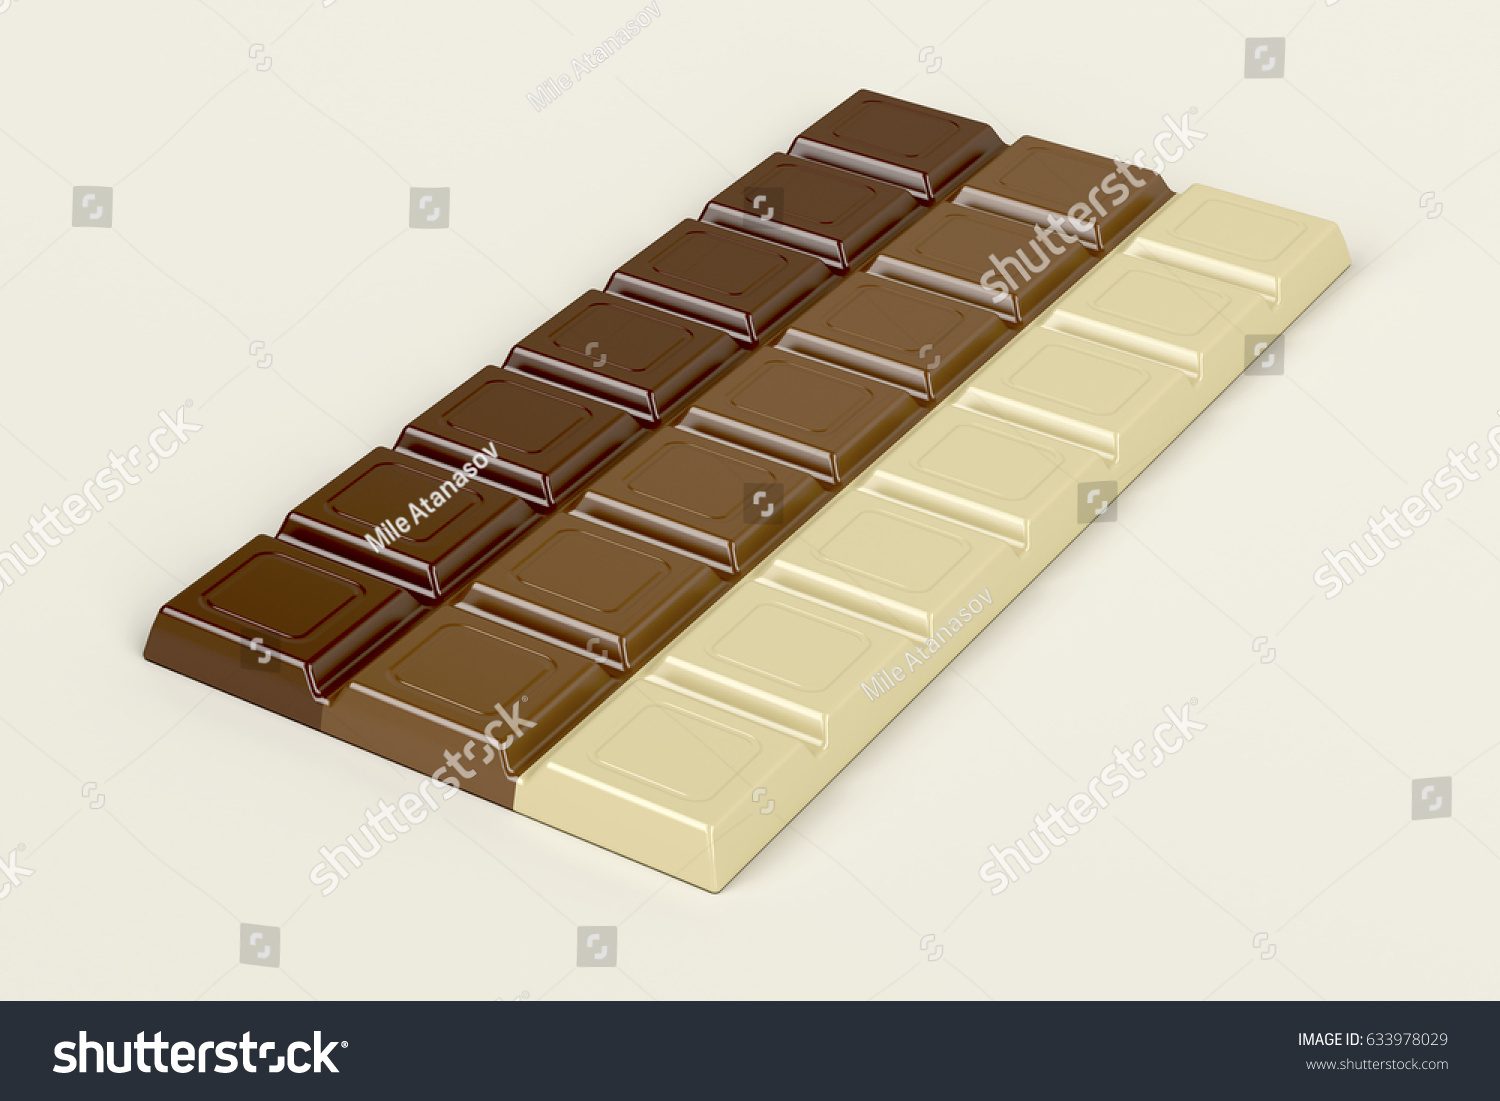 Chocolate Bar Three Different Types Chocolate Stock Illustration ...